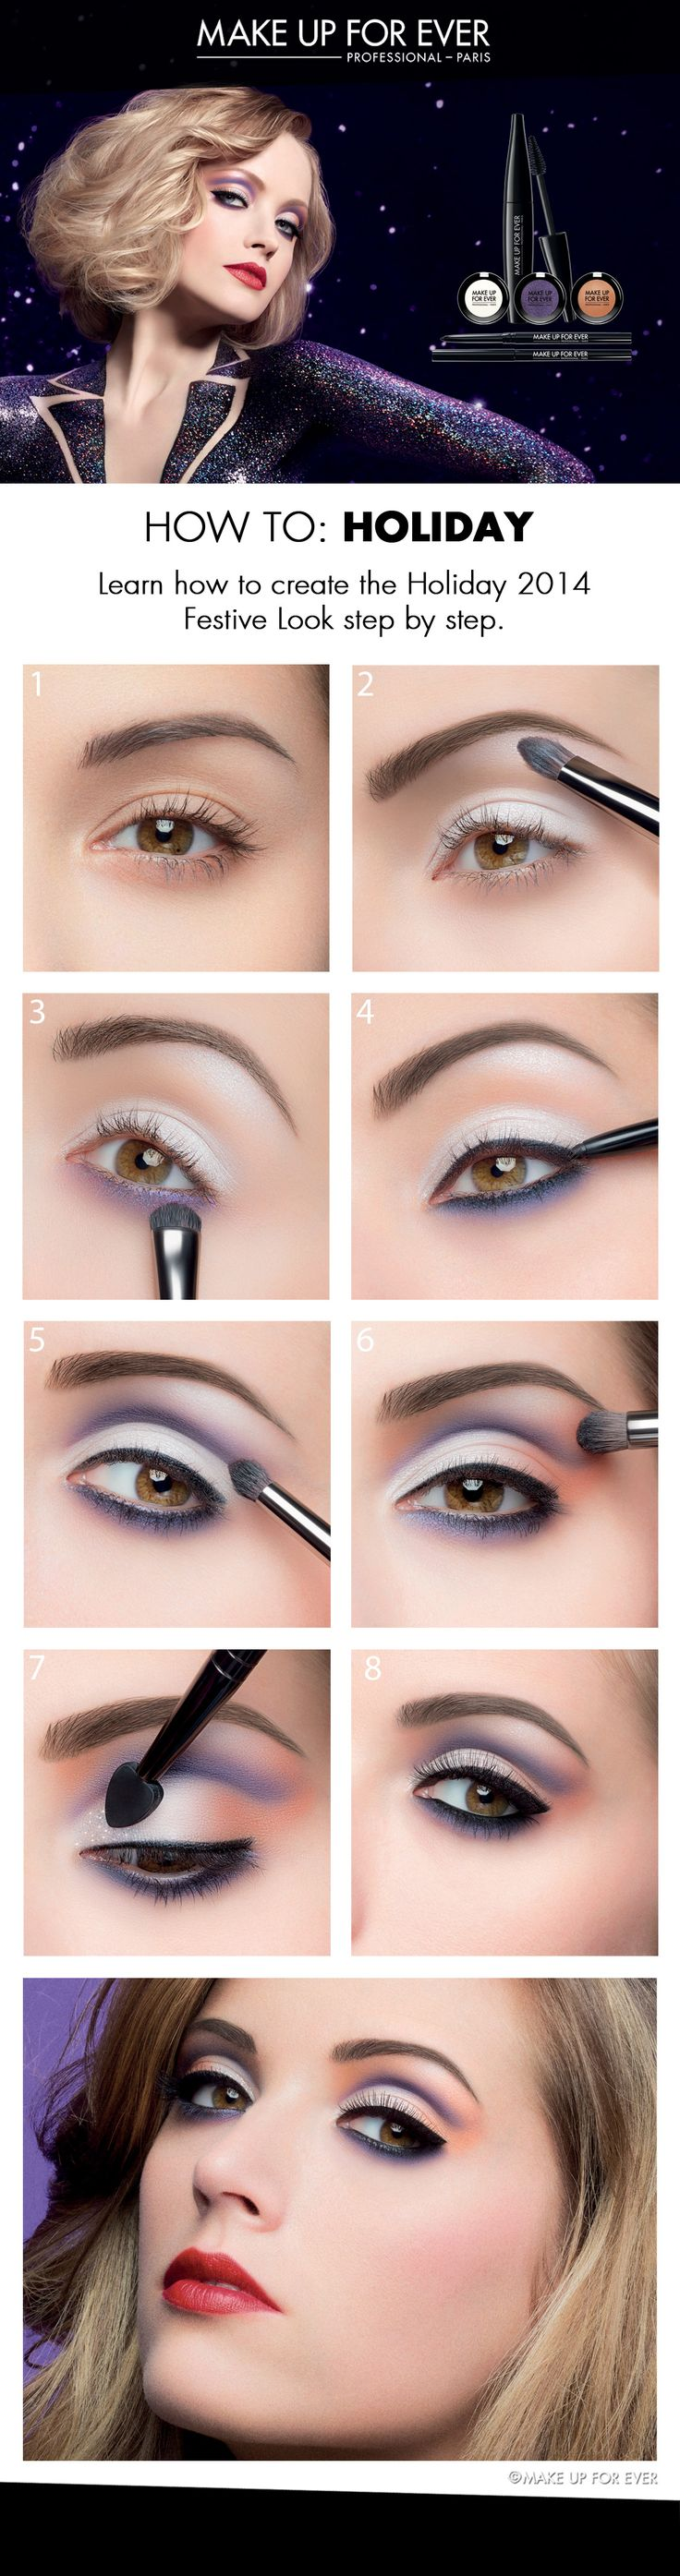 This is soooo pretty wish I could figure how to do this kinda of things!